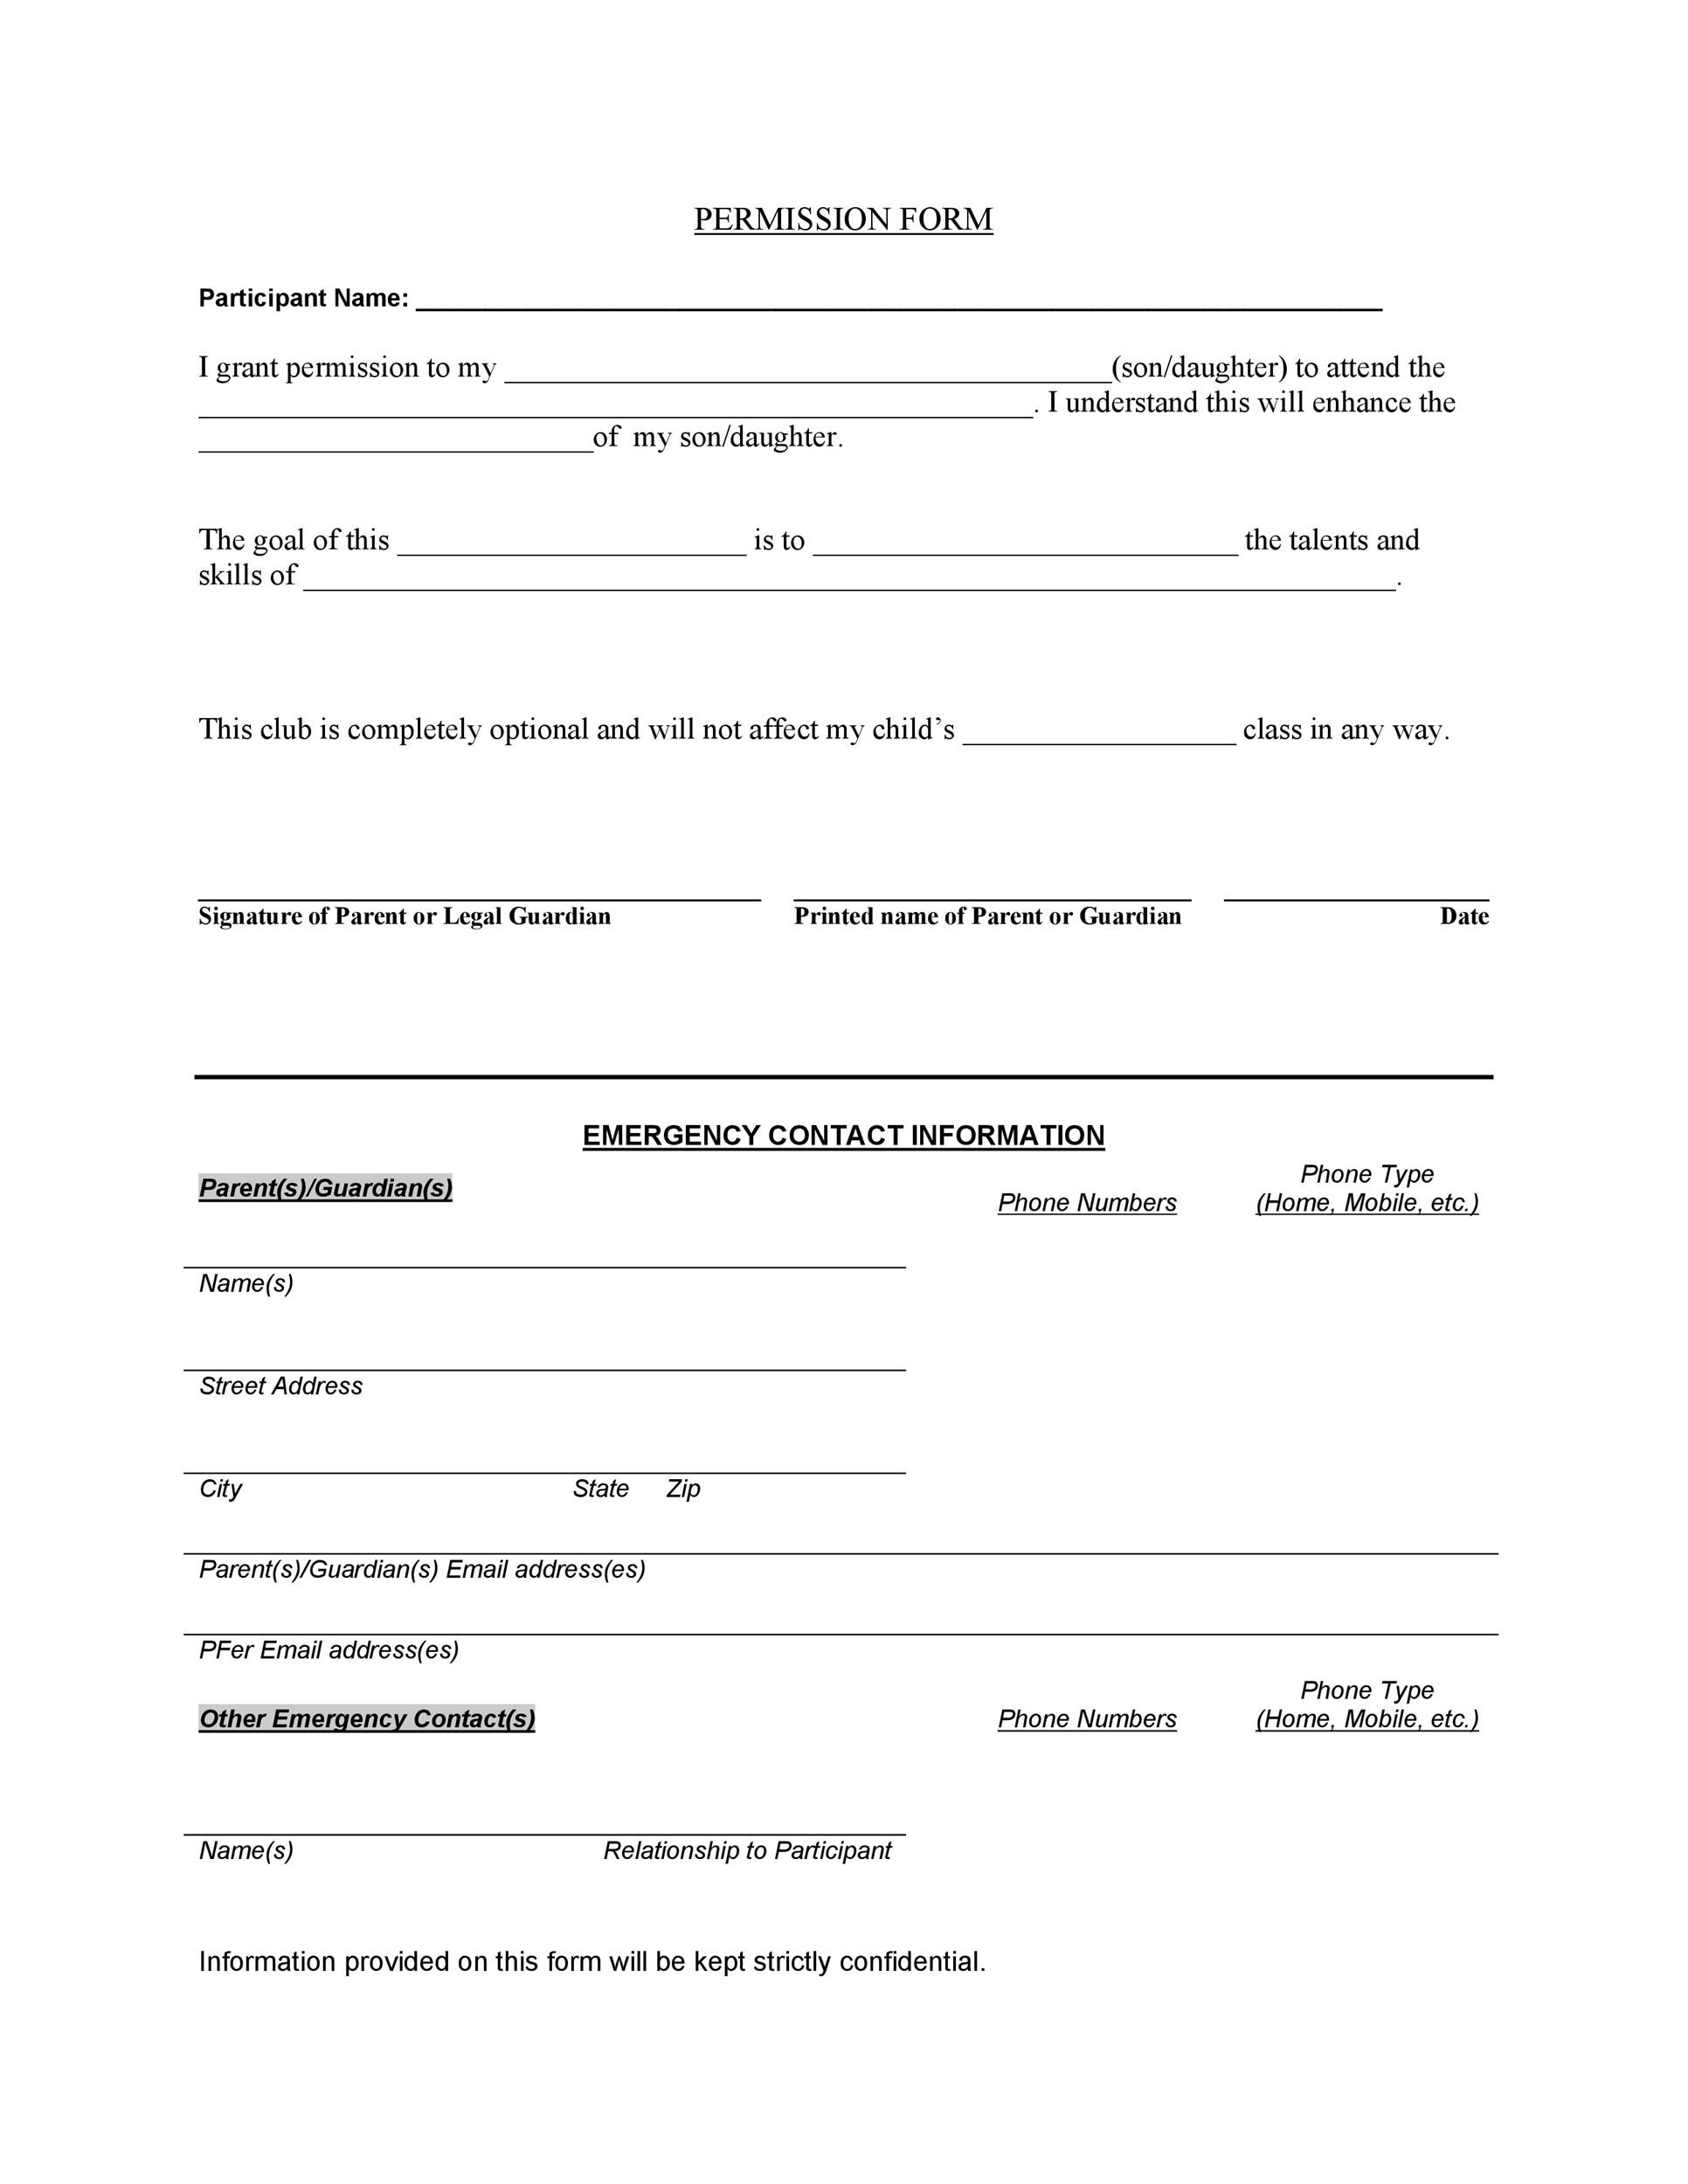 Template Consent Form 35 permission slip templates field trip - background check consent forms